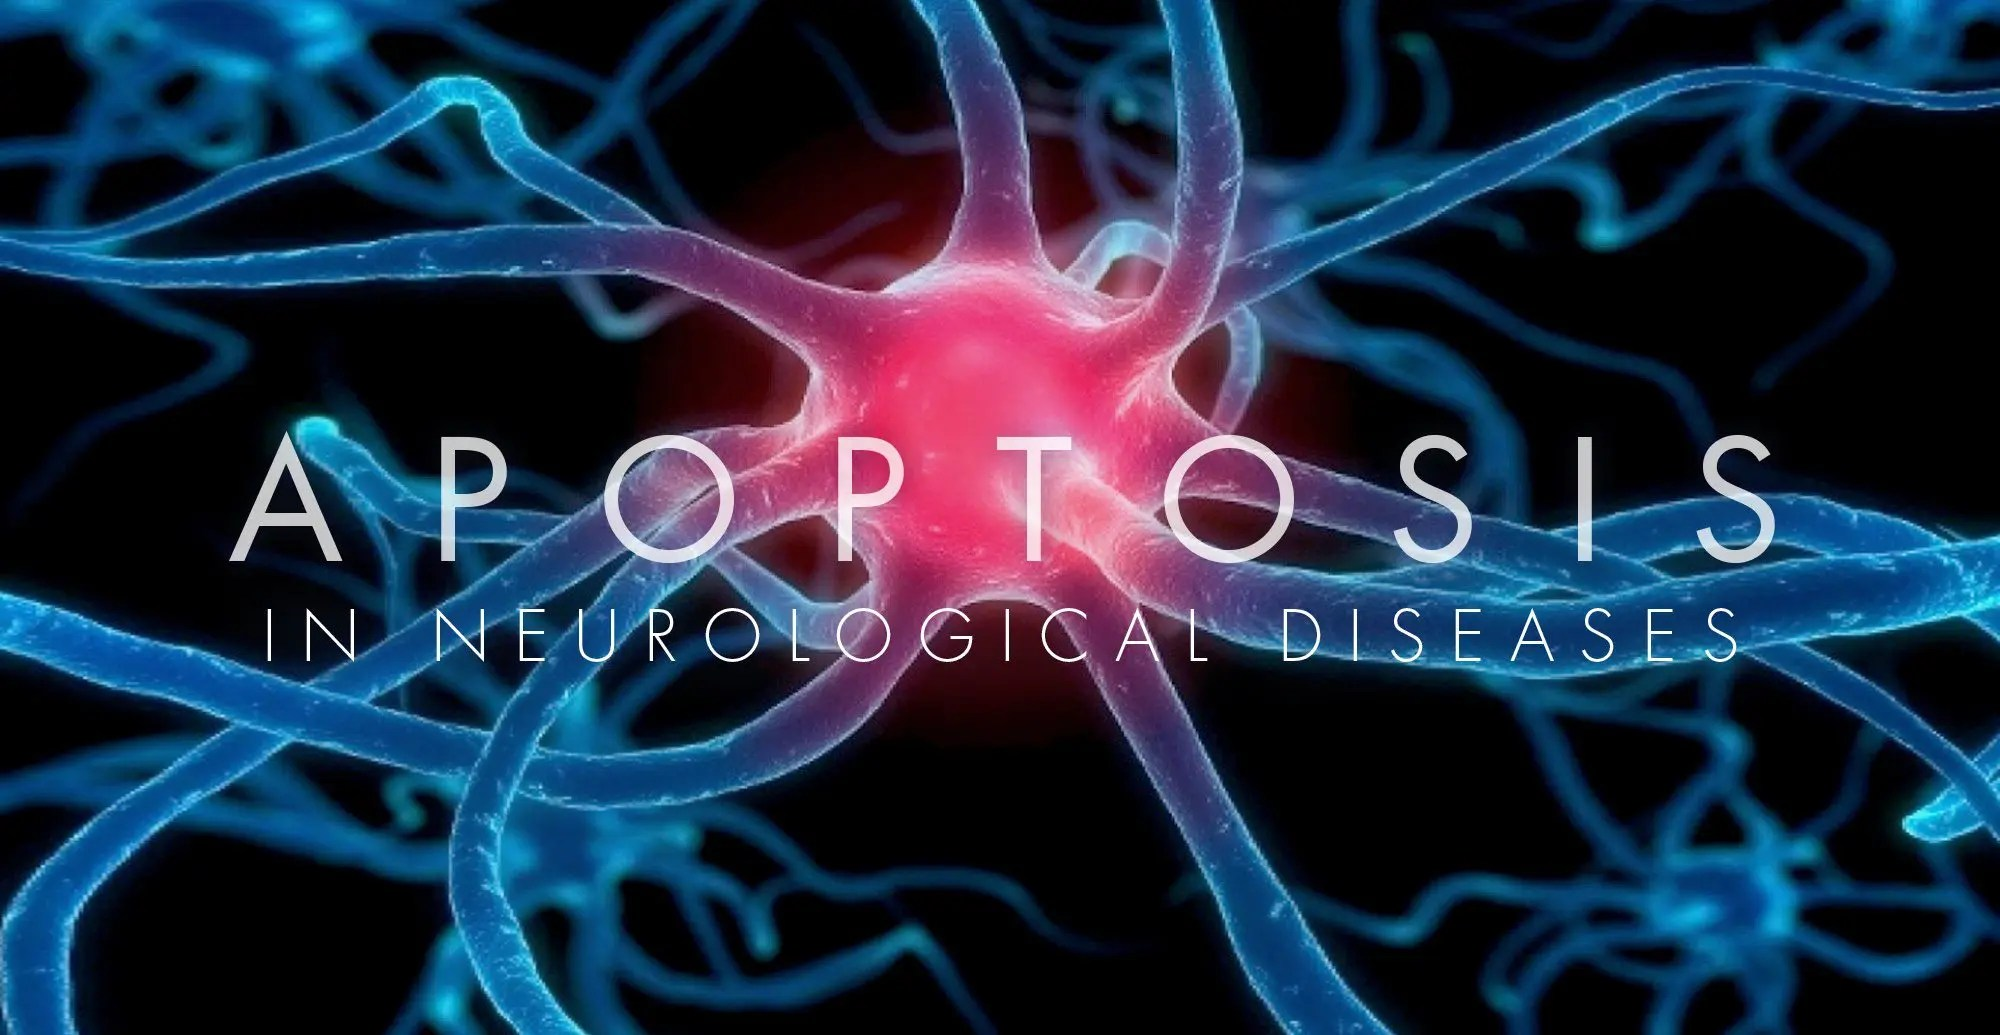 Apoptosis in Neurological Diseases